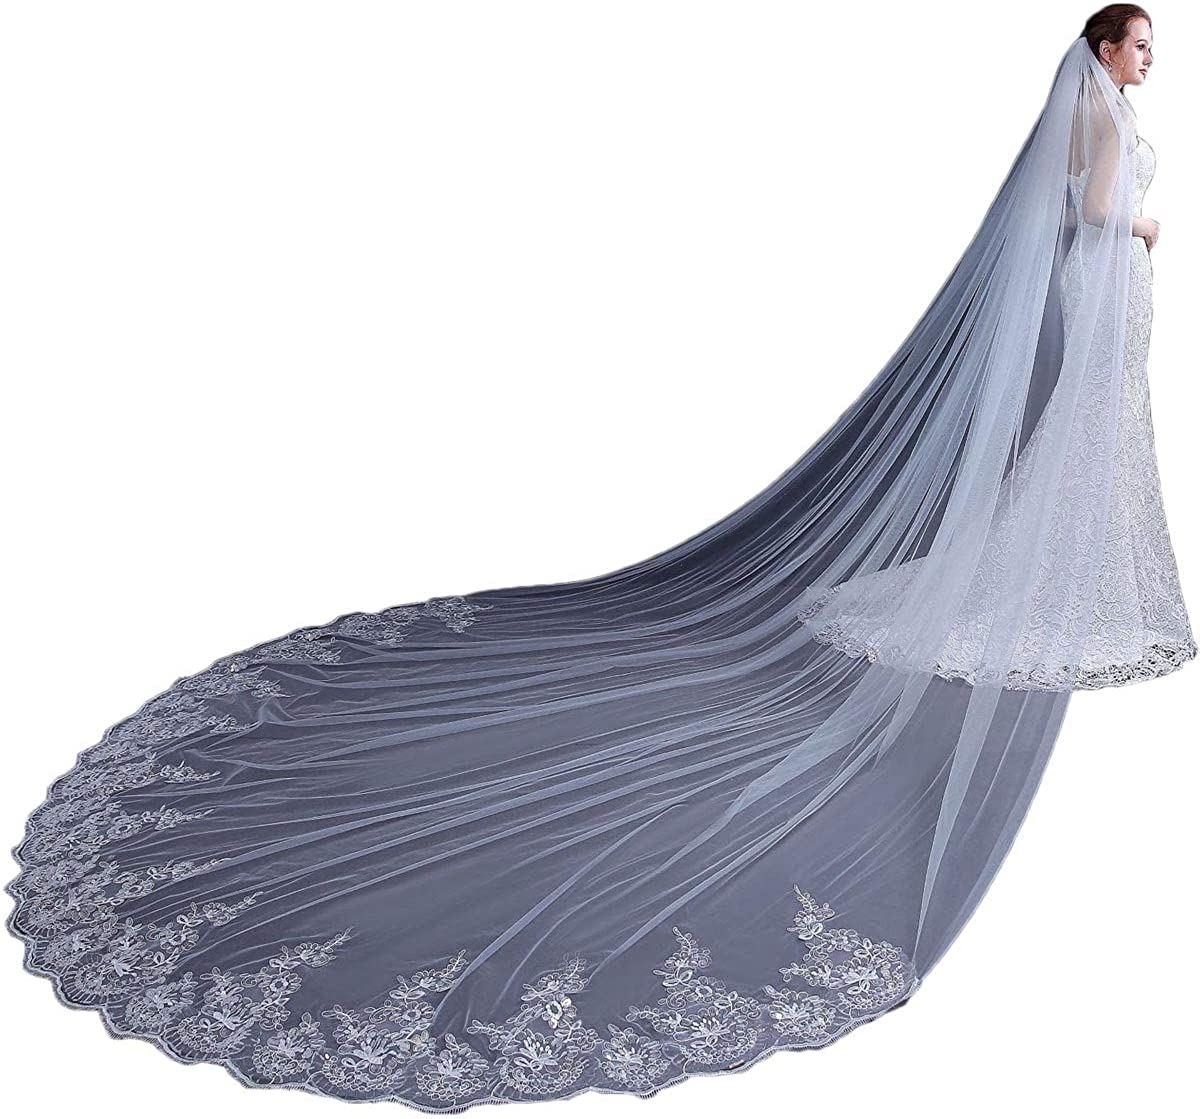 JoJoHouse Women's Long Cathedral Wedding Veil with Sequin Lace Bridal Veil with Comb LTS8